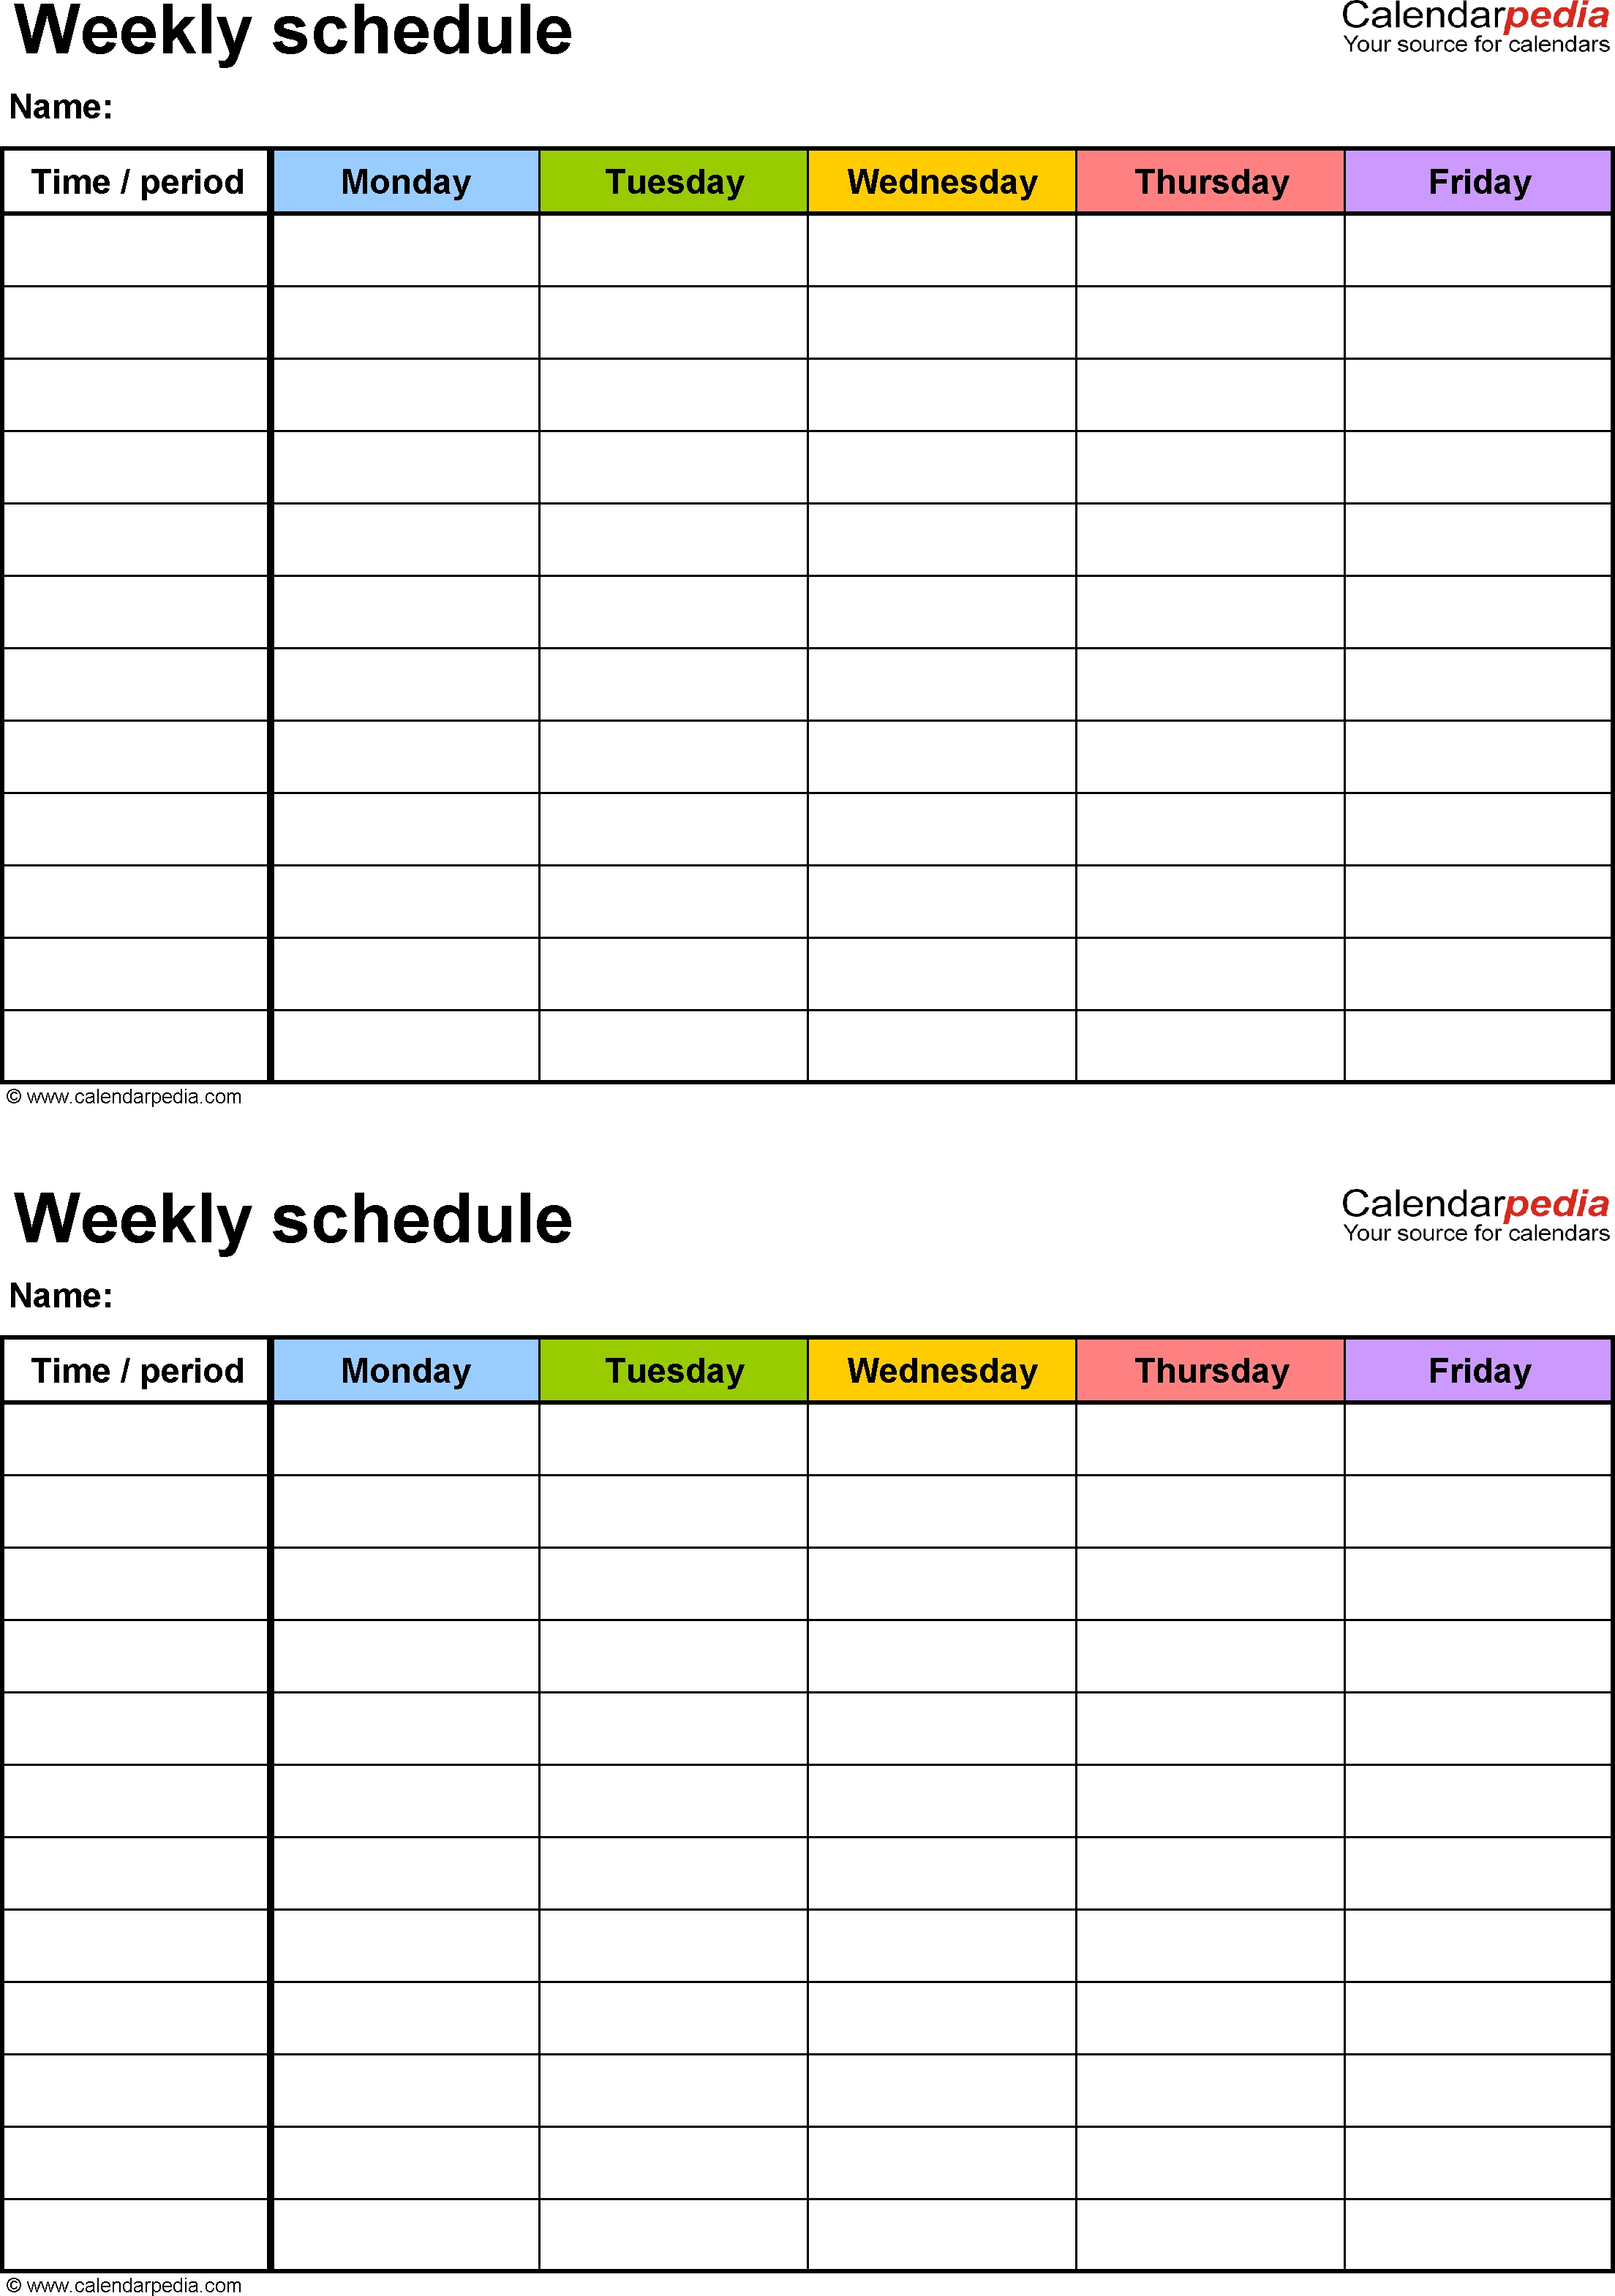 Free Weekly Schedule Templates For Word - 18 Templates Free 6 Week Calendar Template